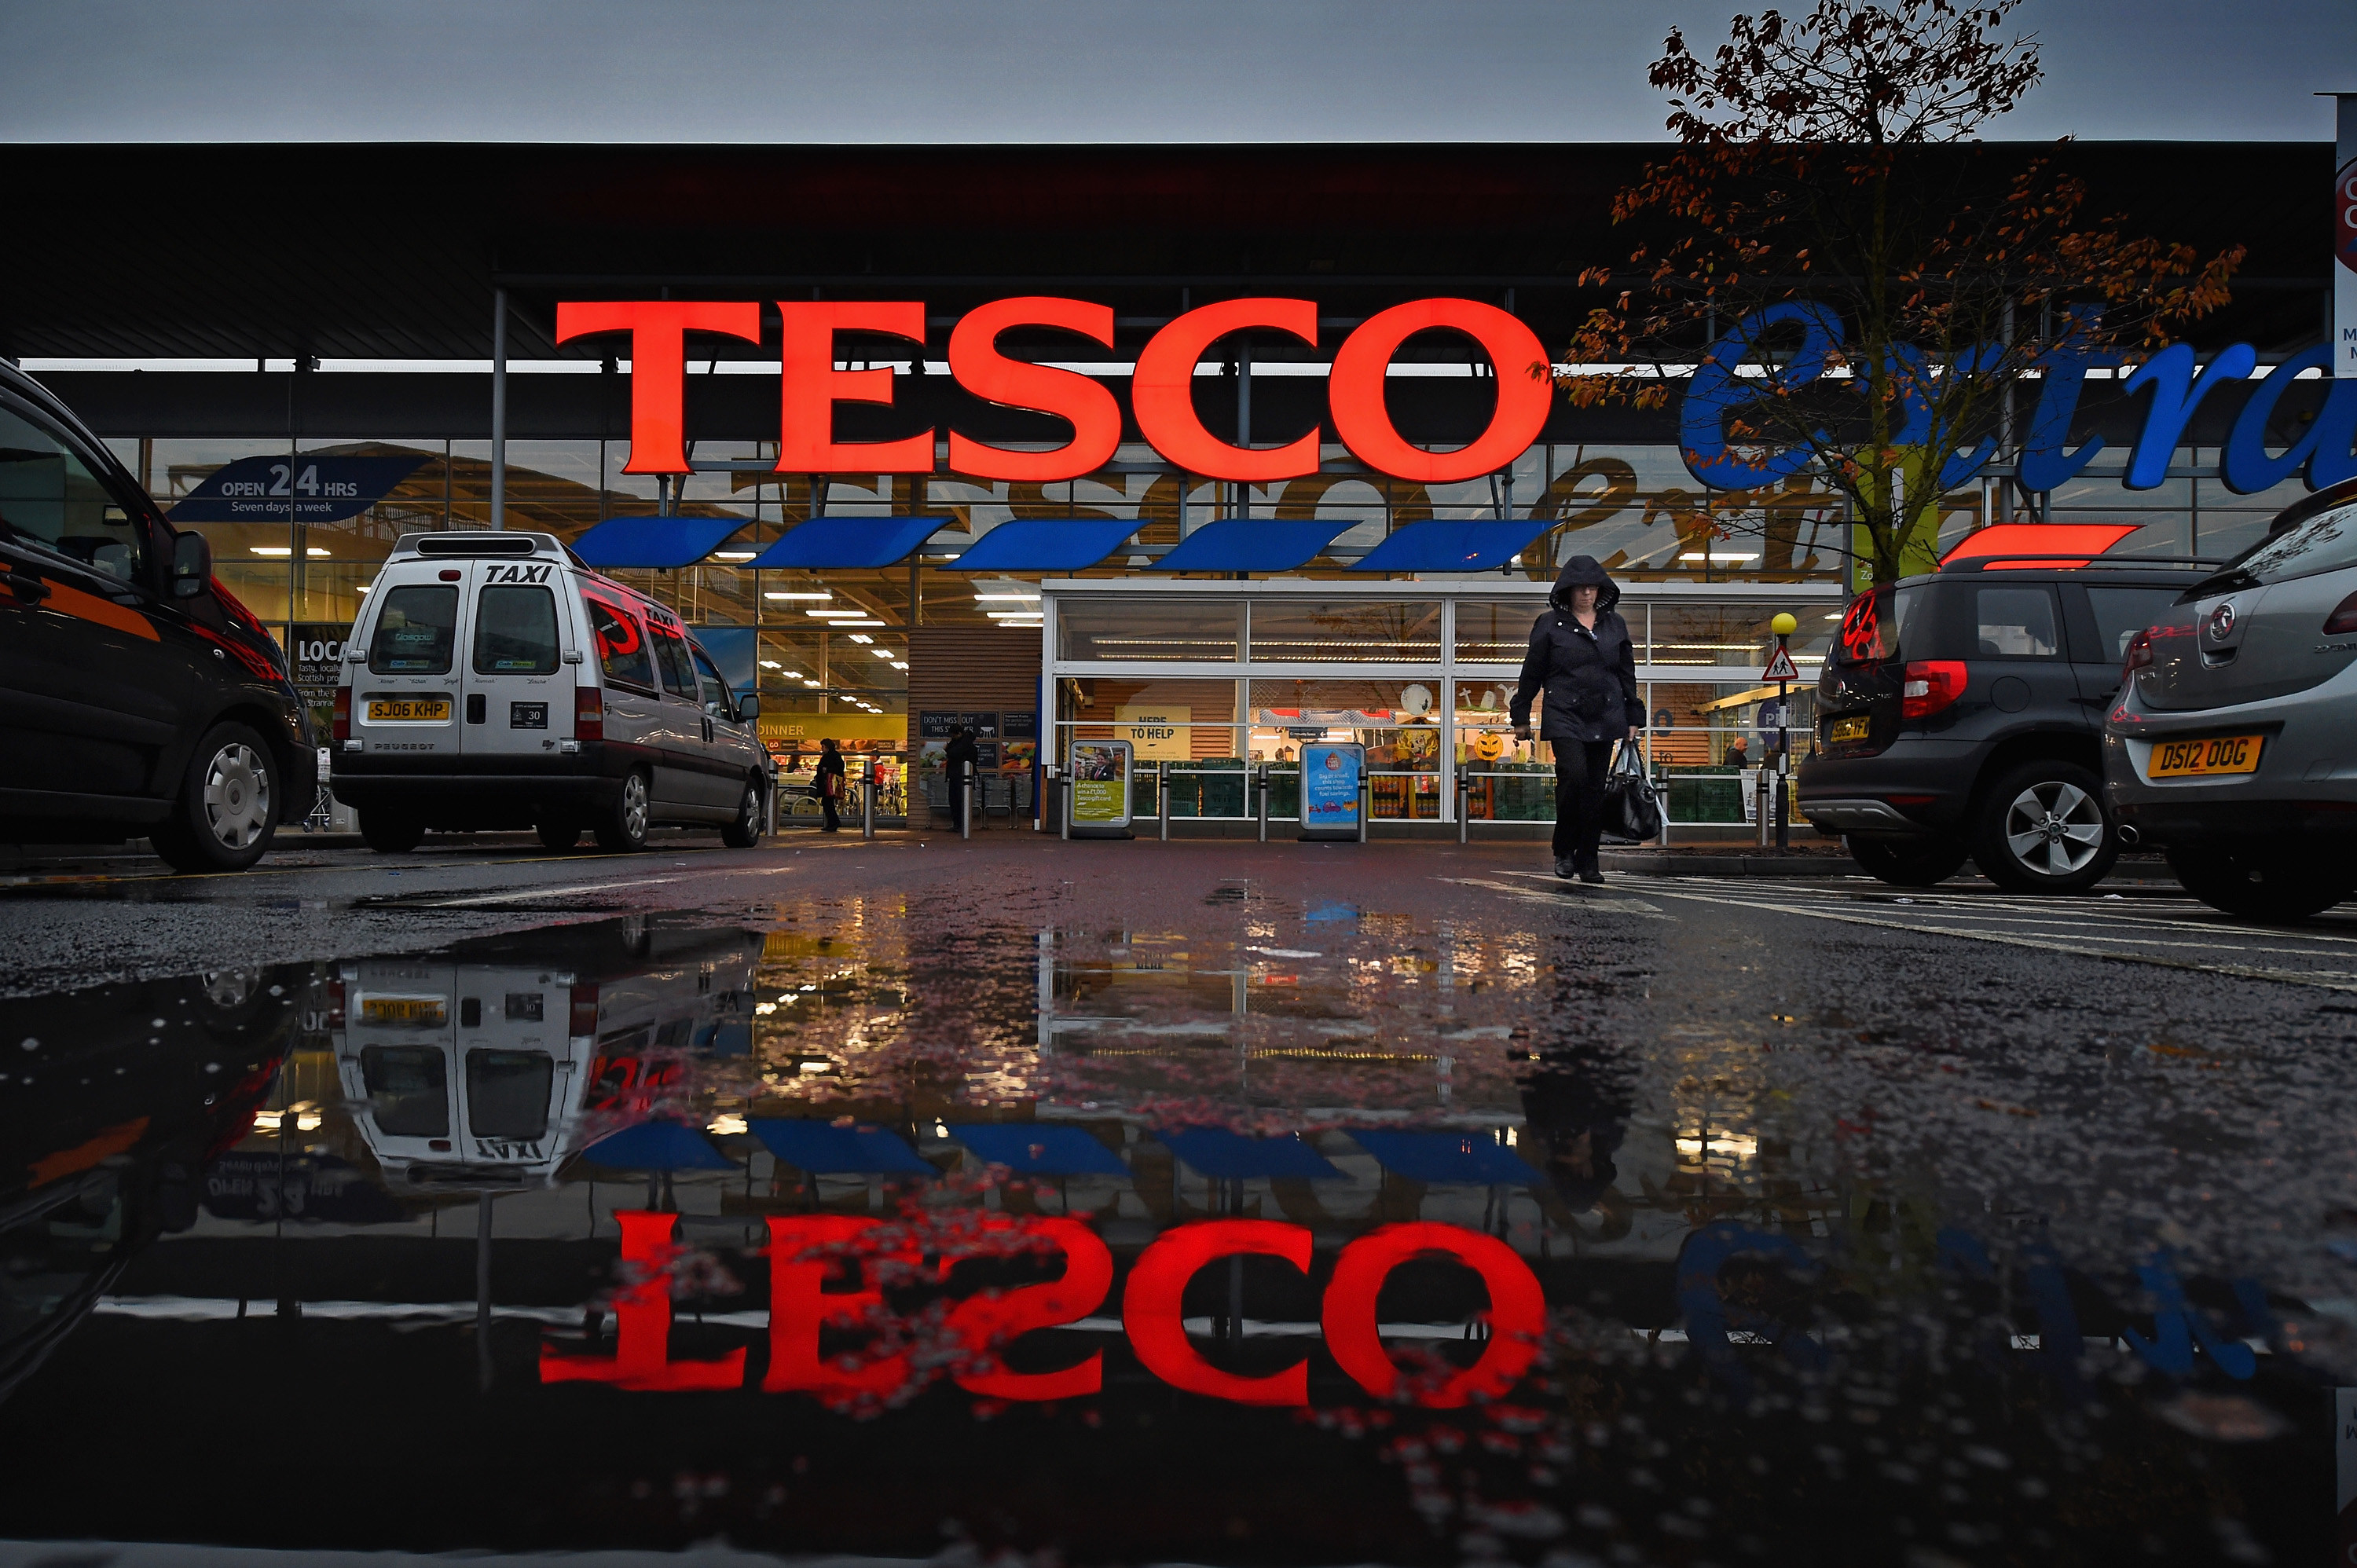 The exterior of a Tesco supermarket in the rain